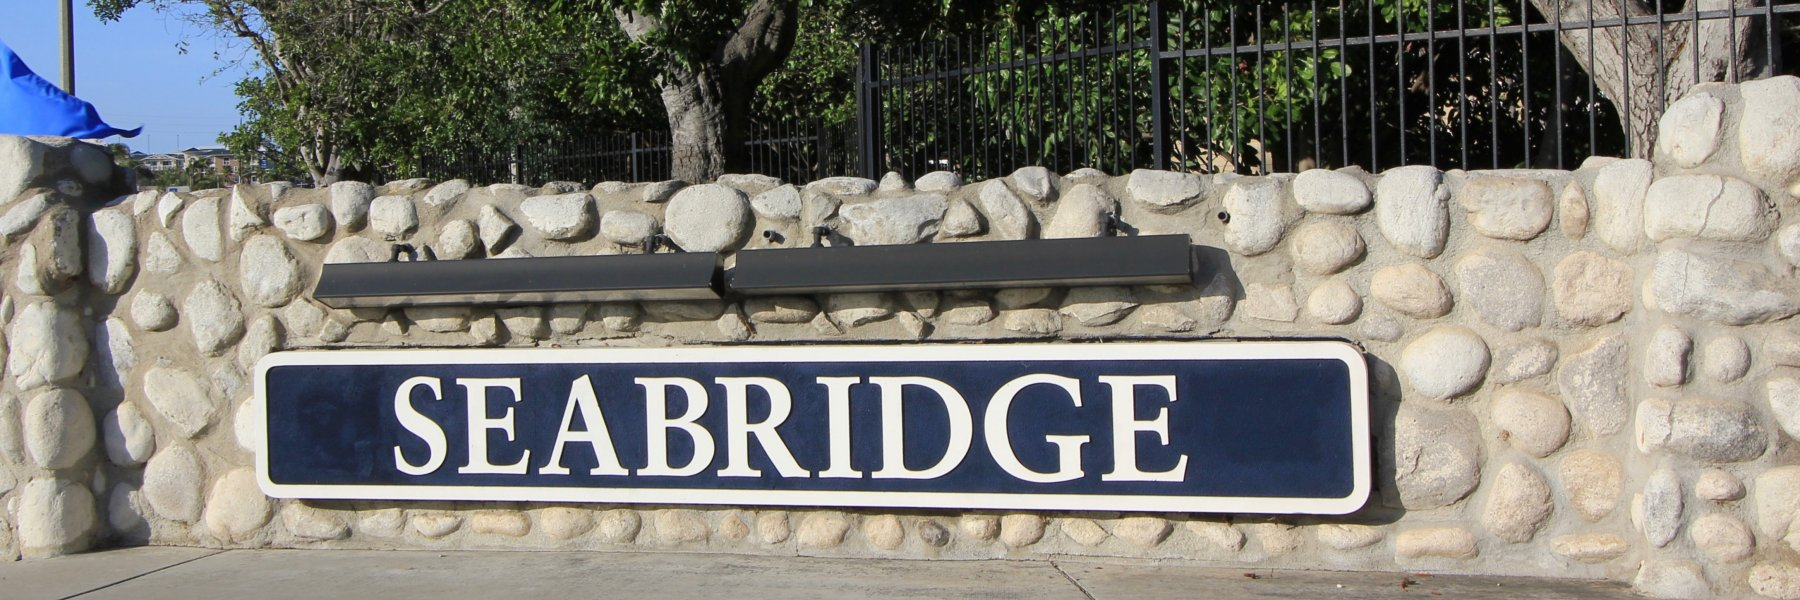 Seabridge is a community of condos in Huntington Beach California